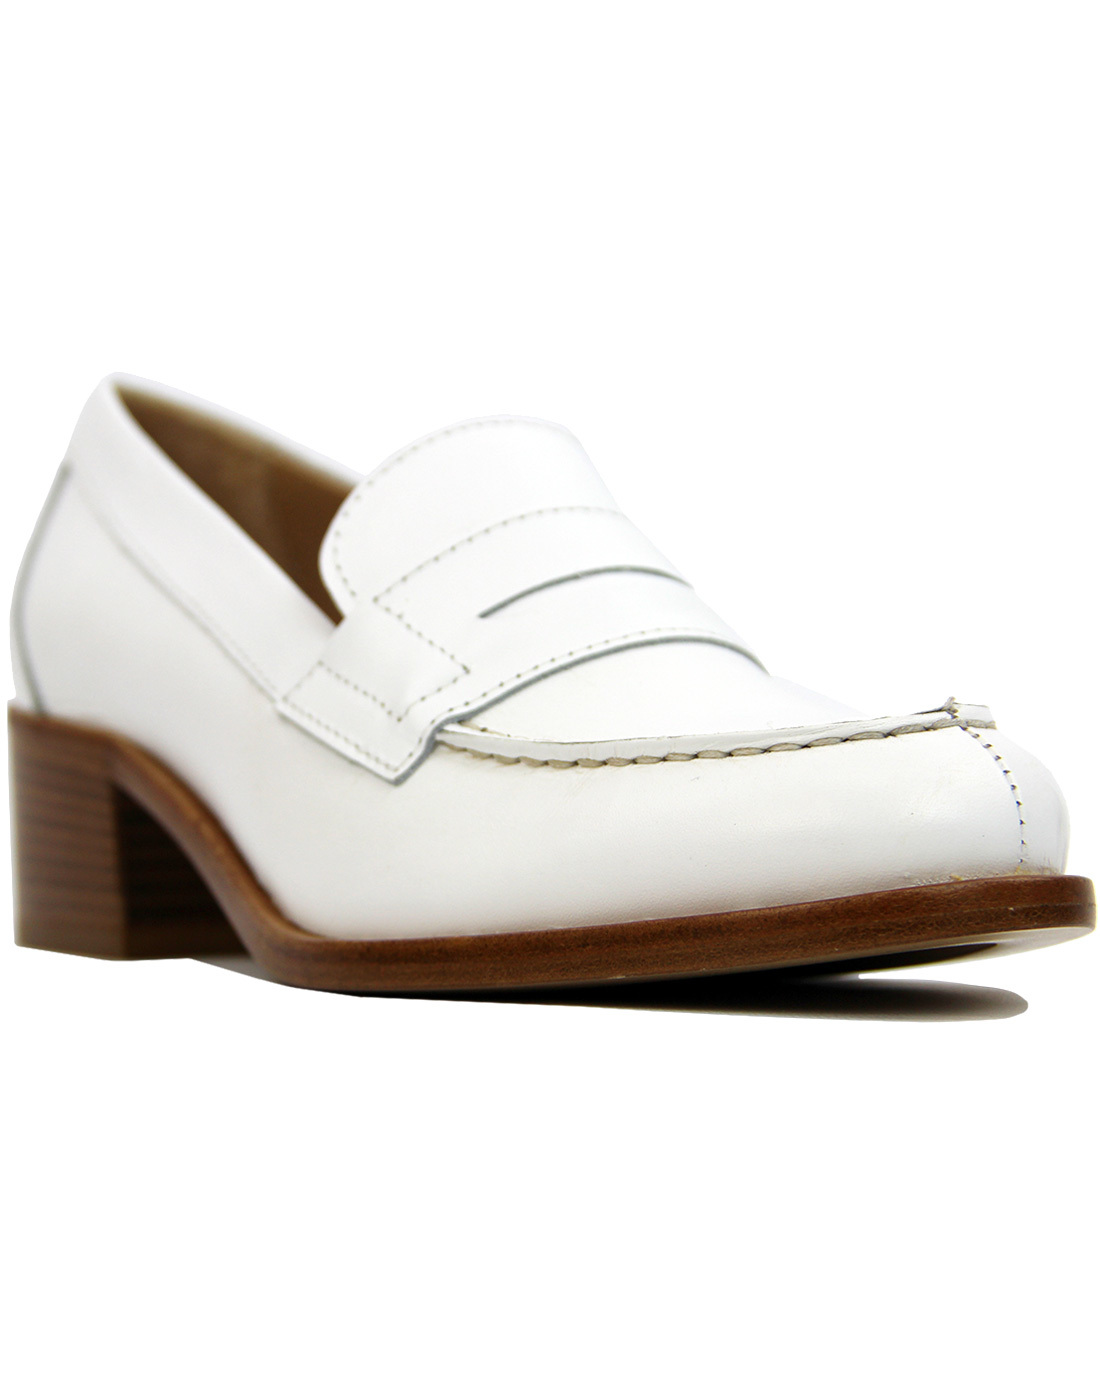 Chic BASS WEEJUNS Womens Retro 60s Heel Loafers